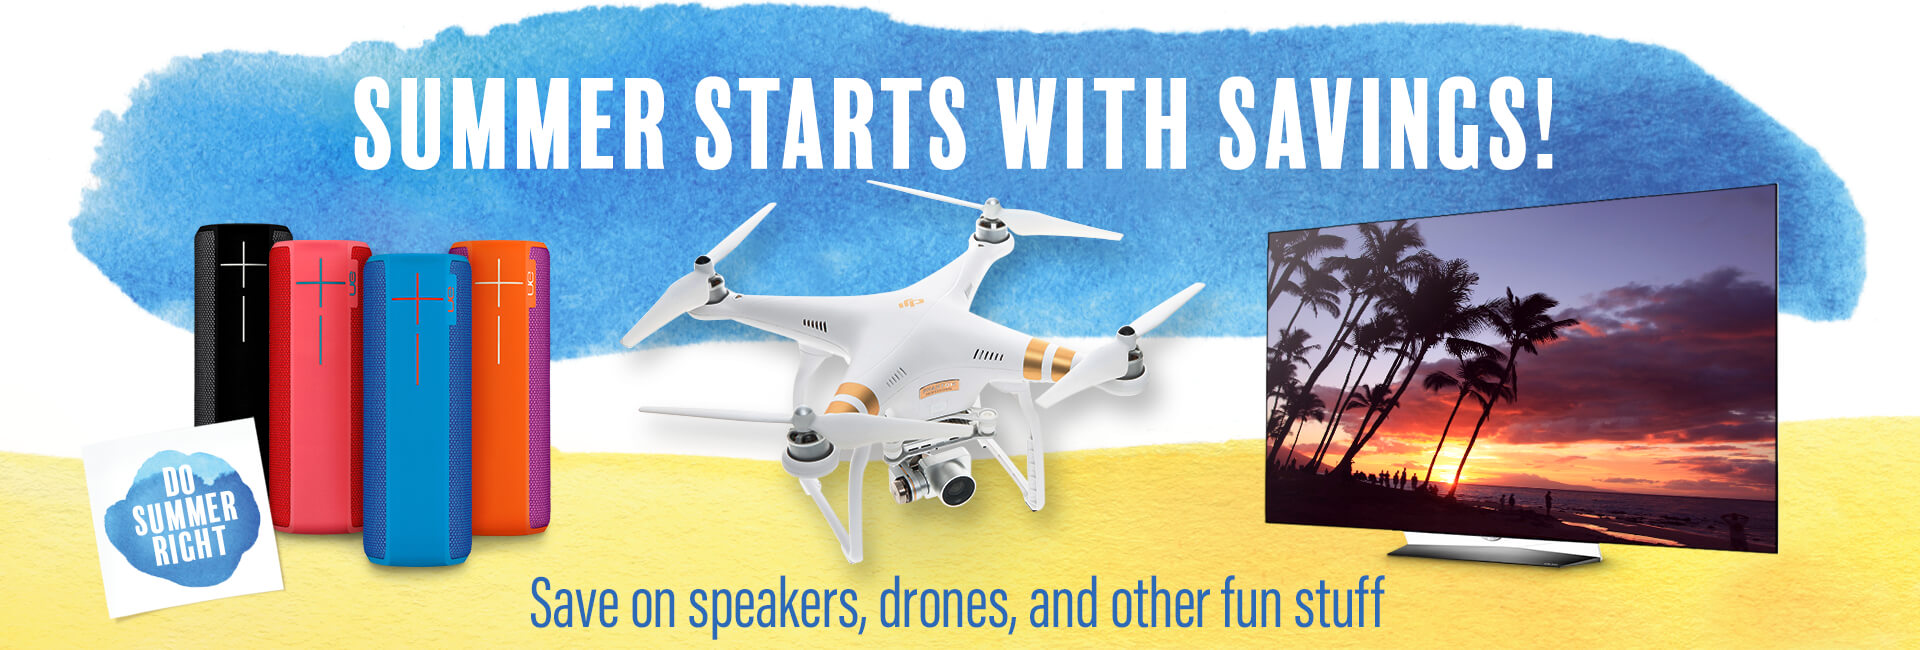 Summer starts with savings! Save on speakers, drones, and other fun stuff